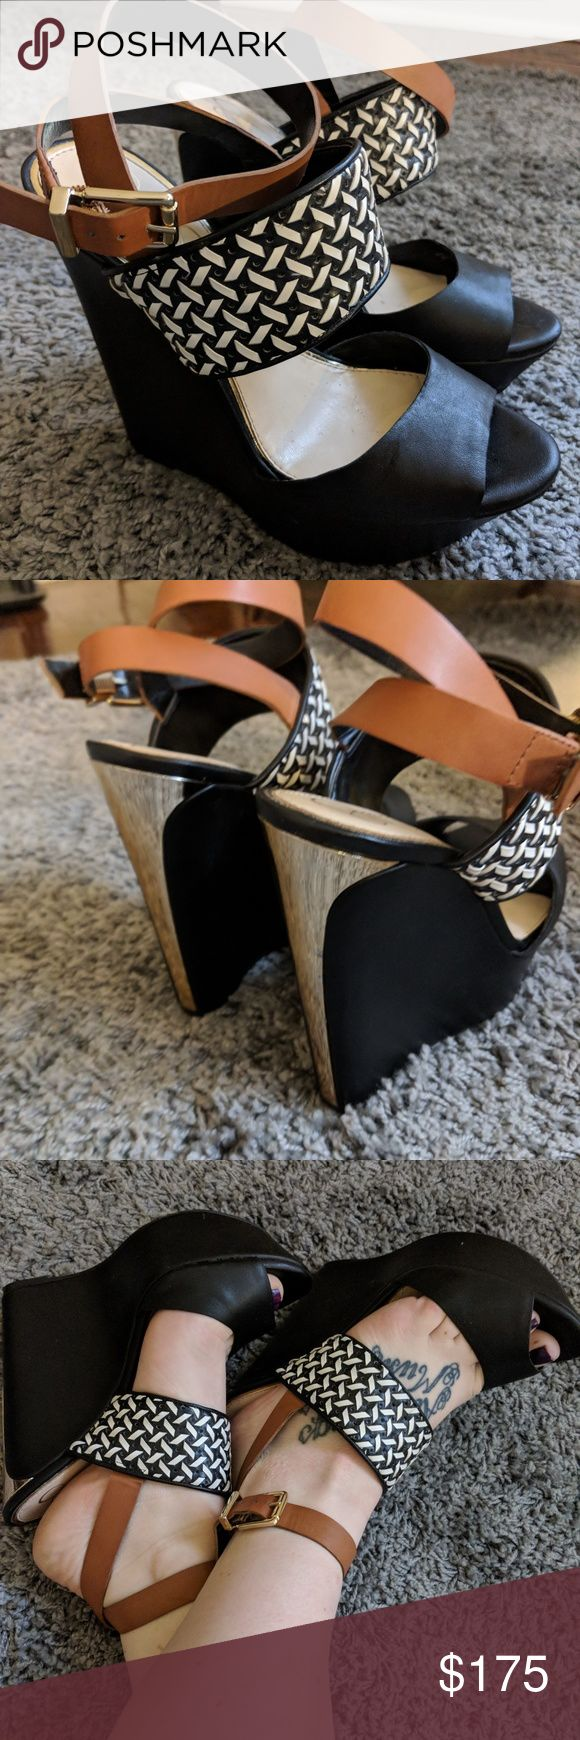 Jessica Simpson ankle strap color-block wedges I absolutely love these sexy strap wedges! Black, pattern gold and tan color block. Only worn twice. The only reason I'm selling is because the heel is a little high for my coordinative abilities. Originally bought for $200. Jessica Simpson Shoes Wedges